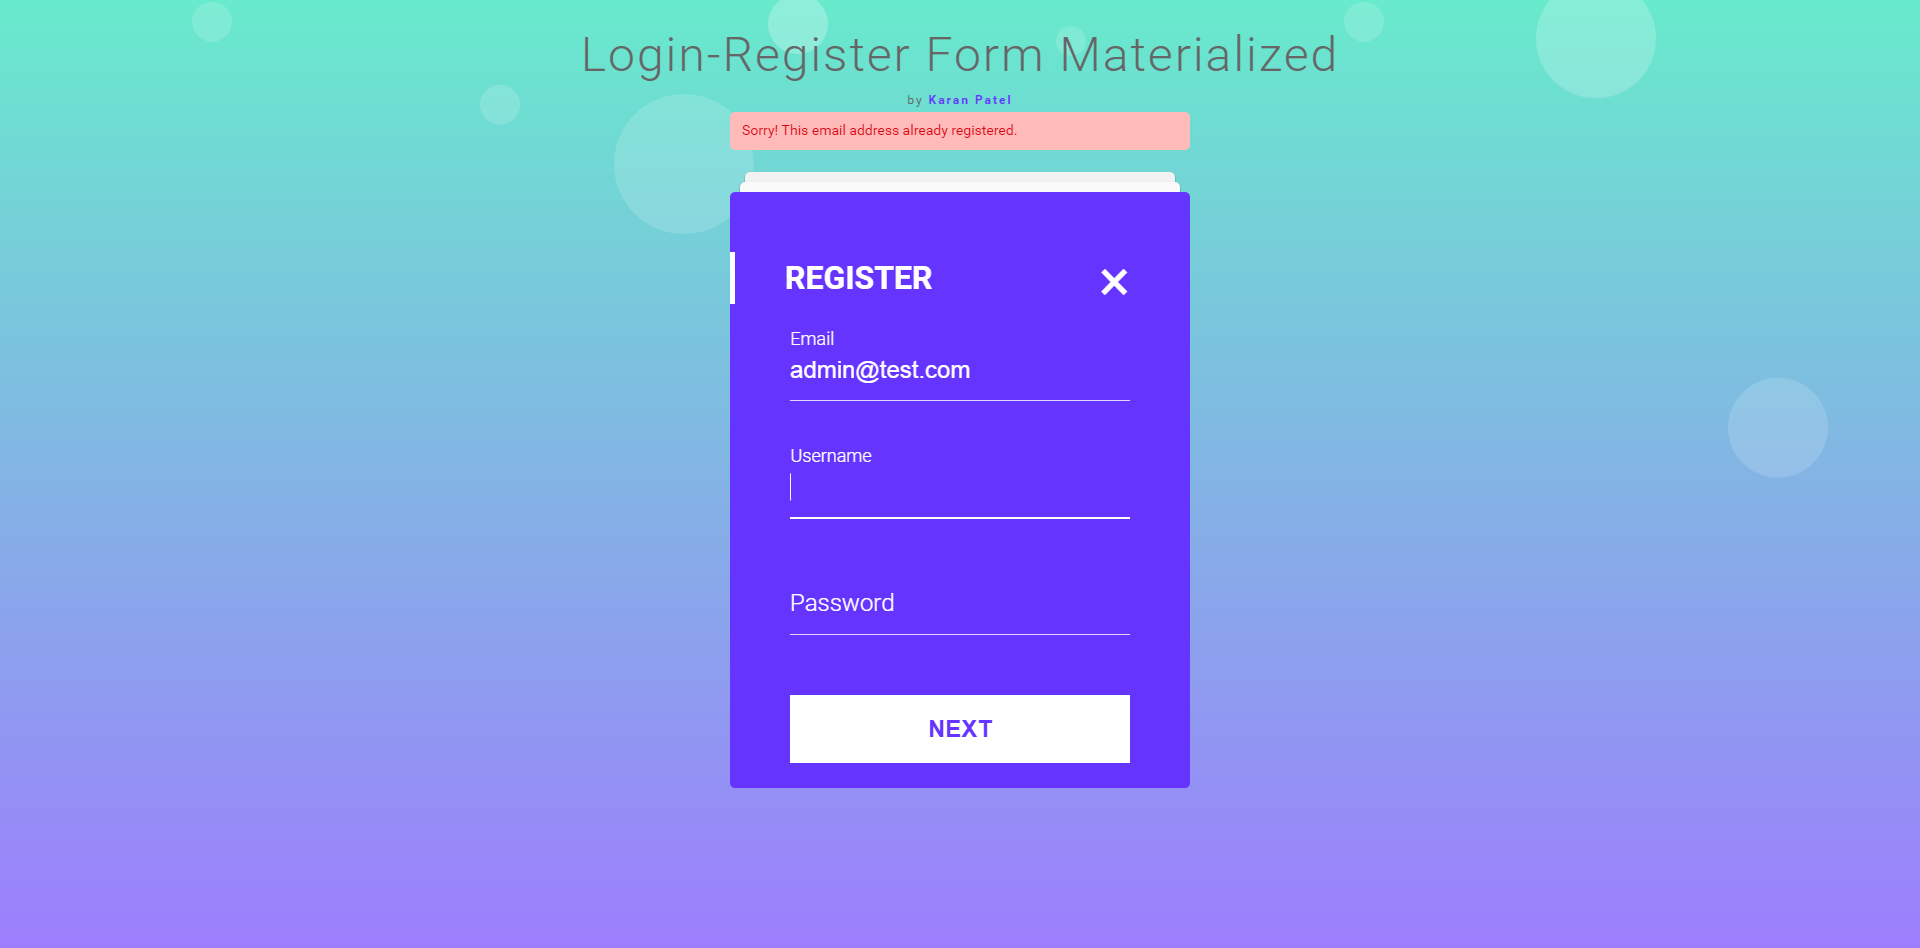 asp net login page template - login registration form in mvc materialize design by